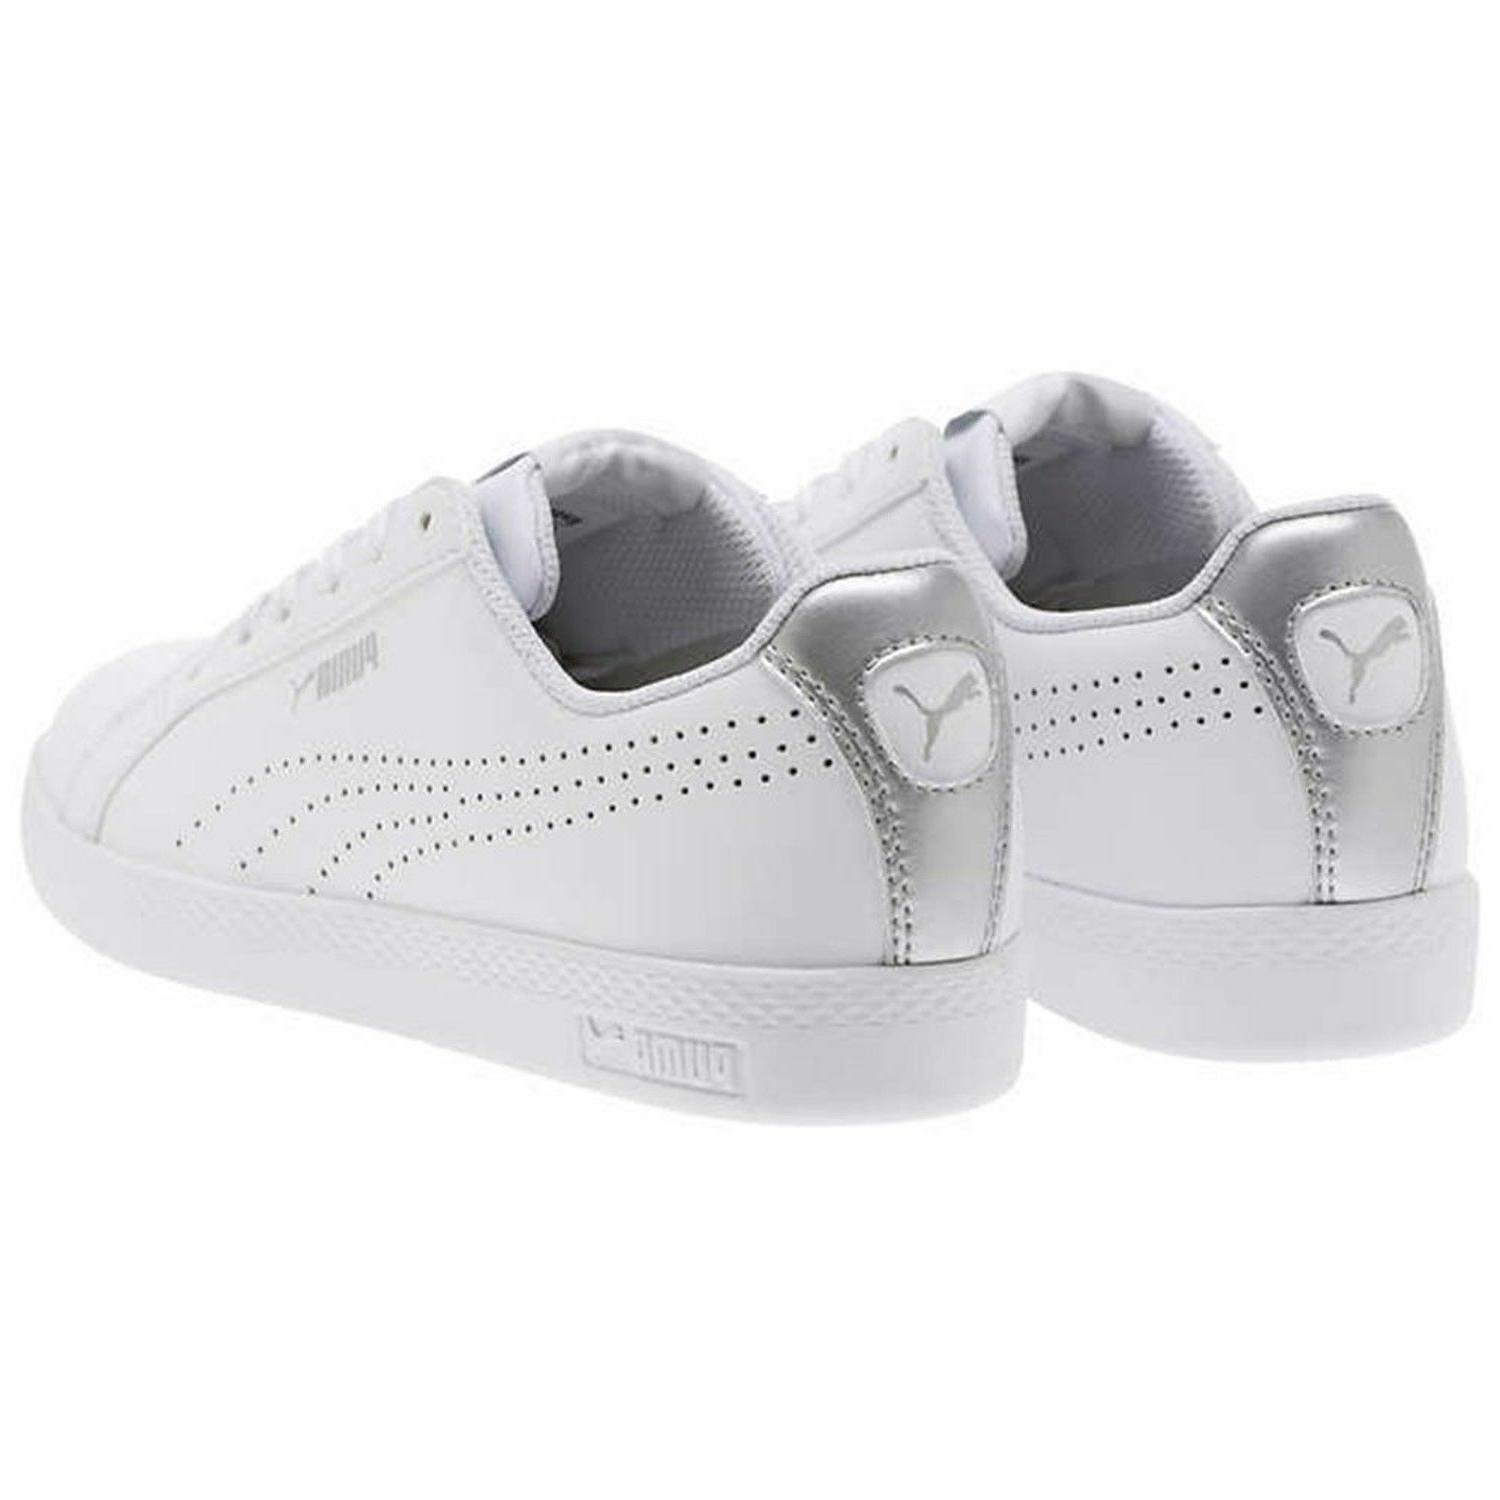 PUMA Women's Leather Tennis Shoes